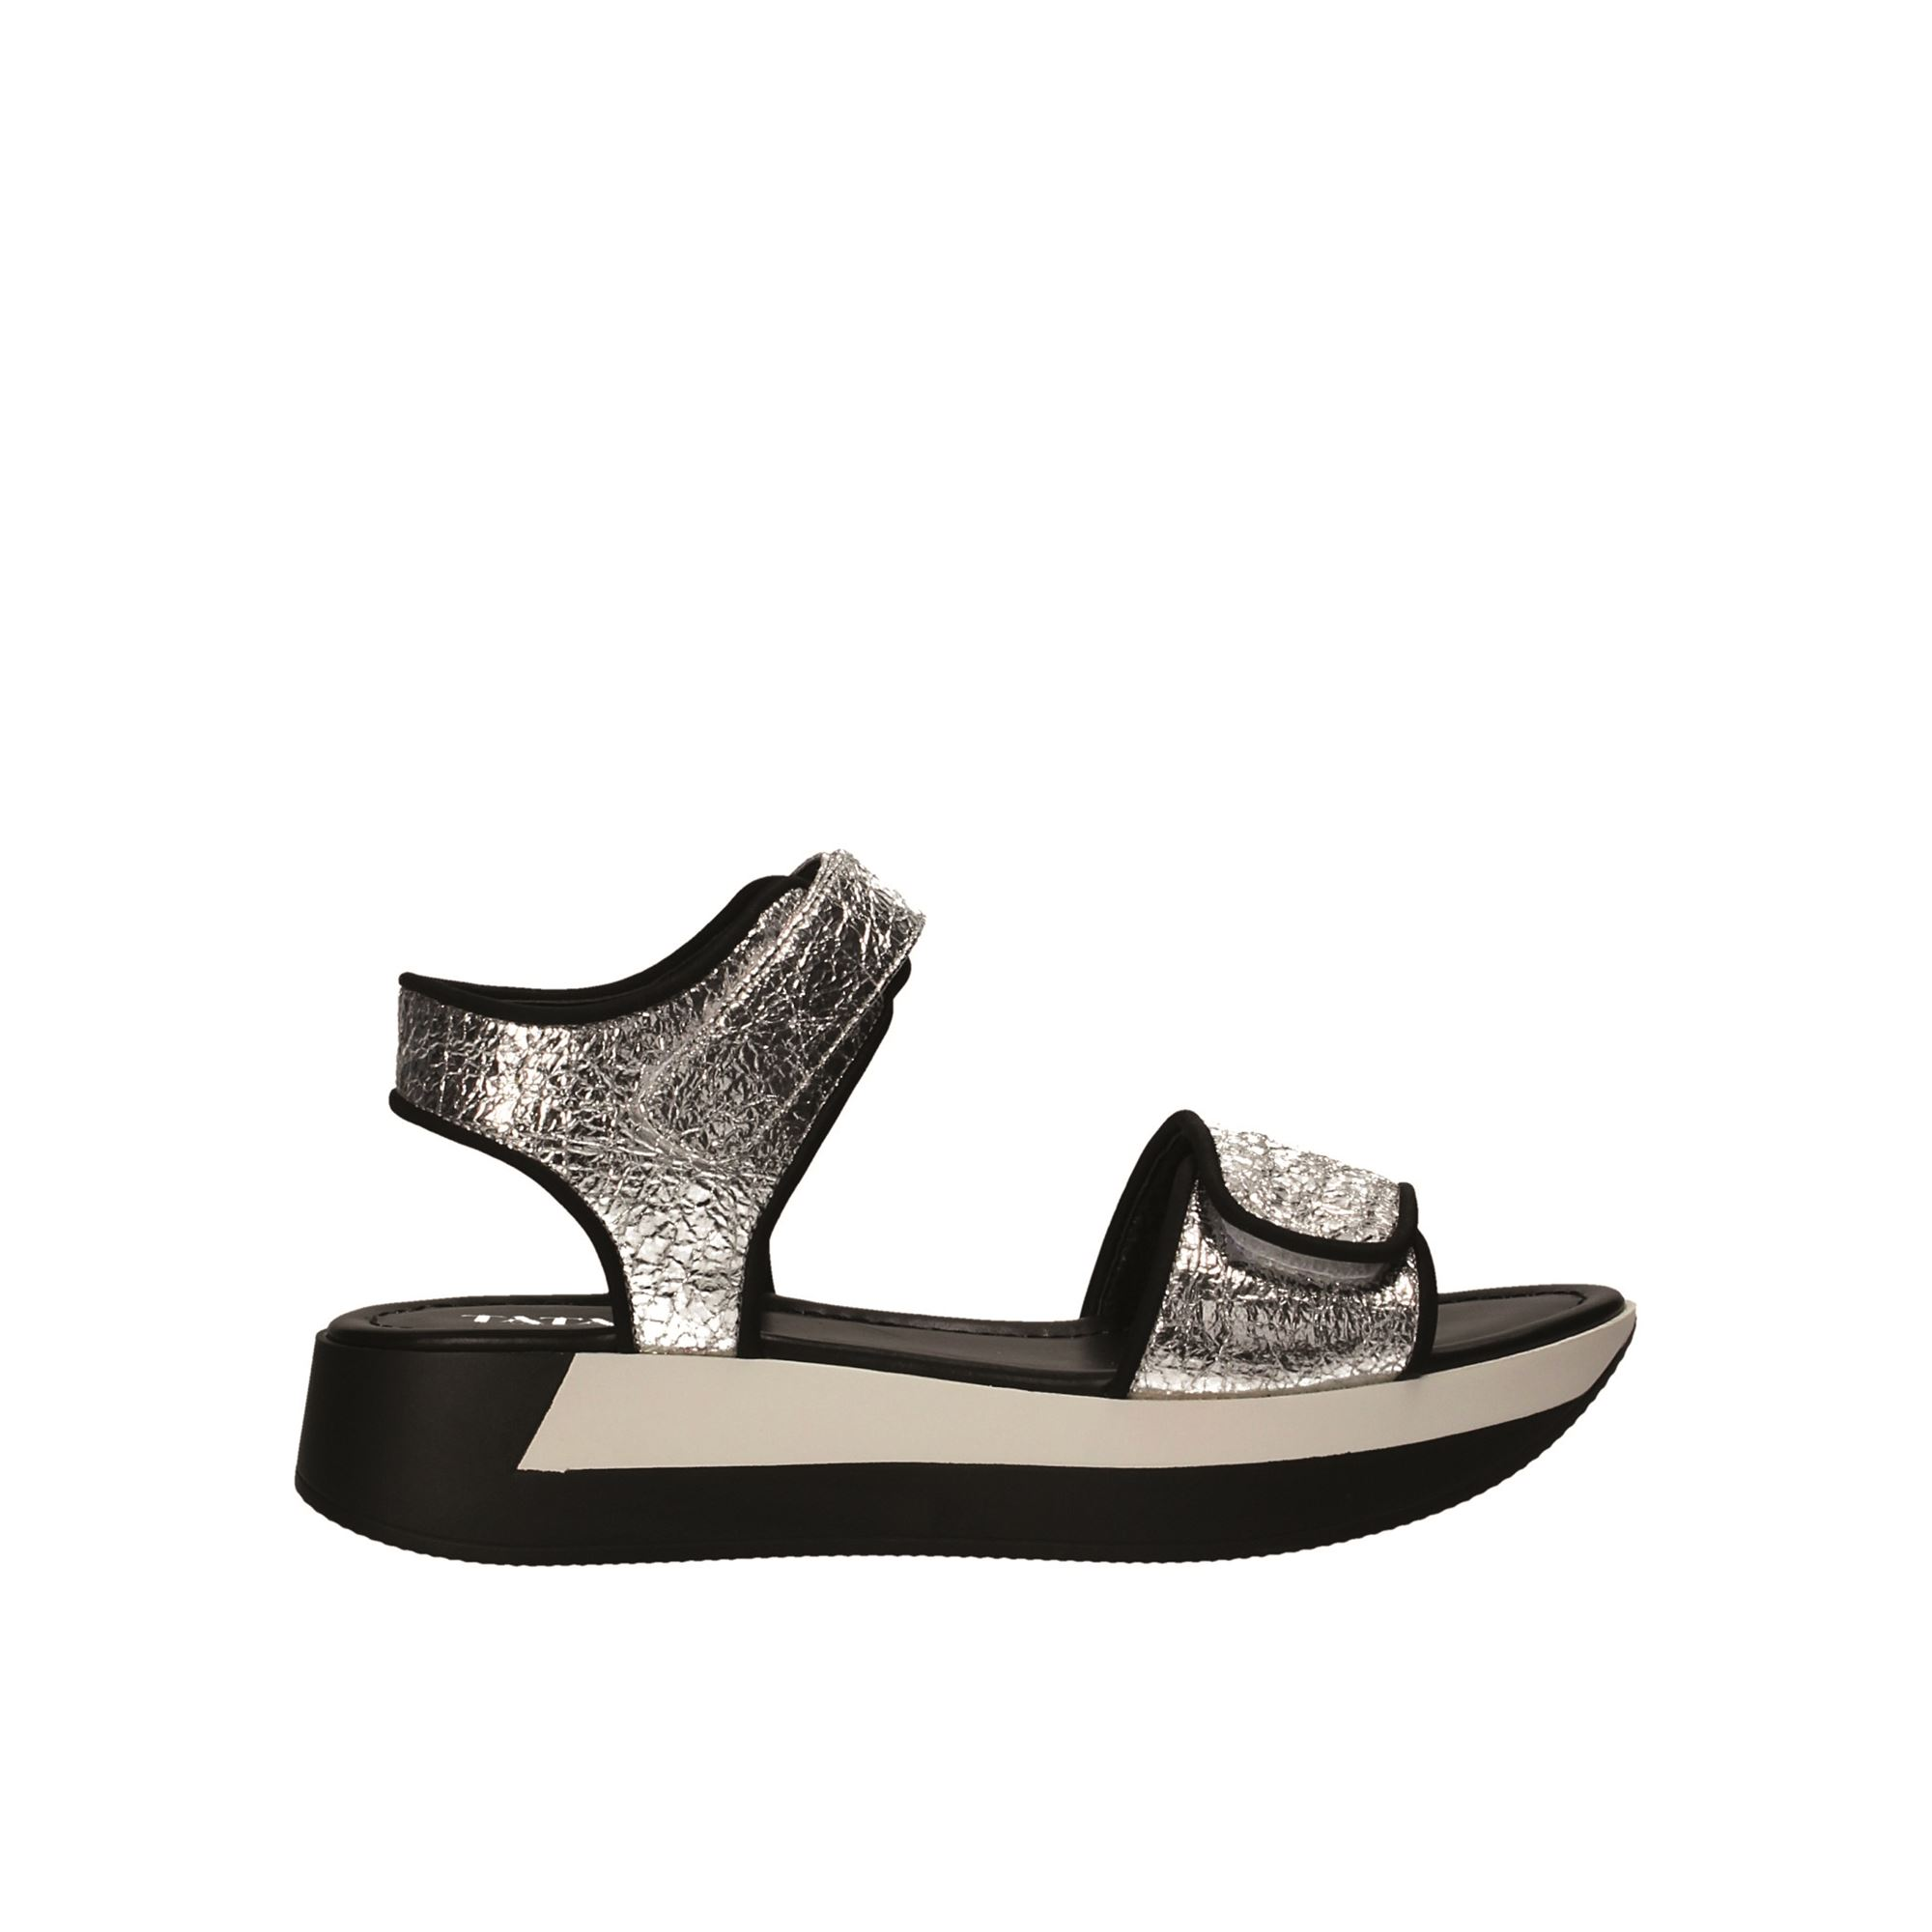 Tata Italia Shoes Woman Sandali Silver LS401505-19